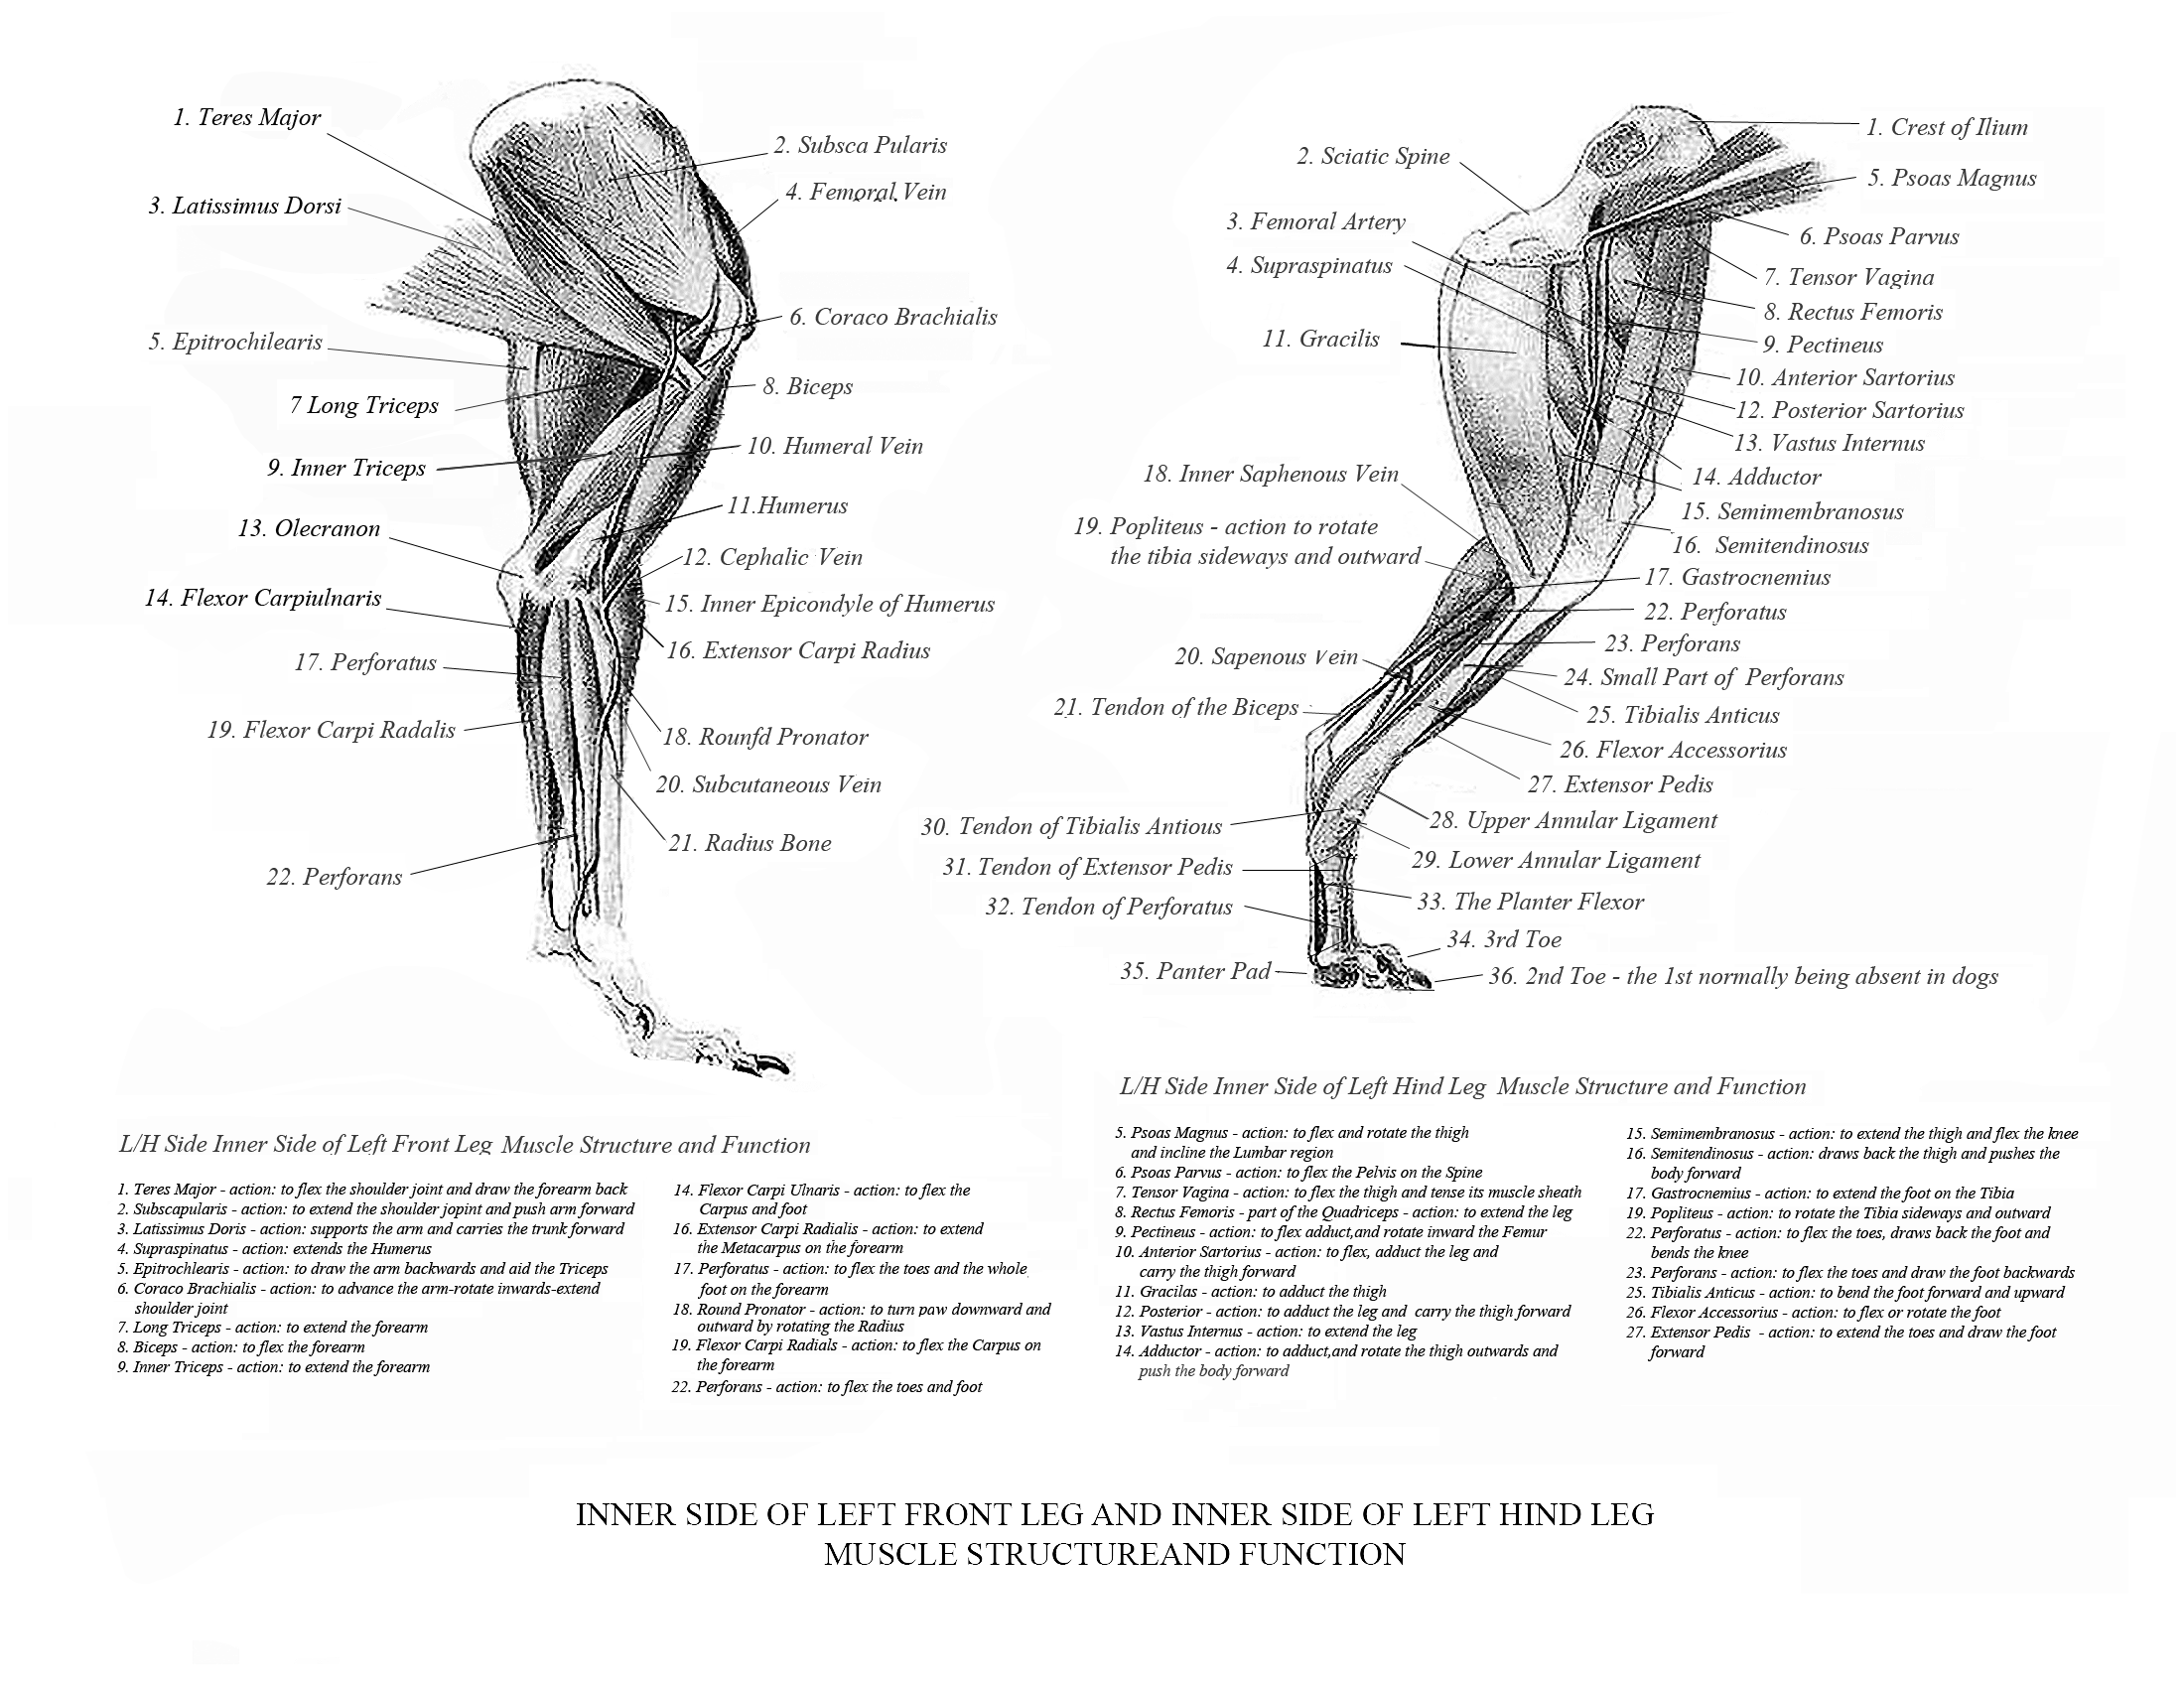 Greyhound Anatomy Diagram - The Inner Side of the Front Leg and the ...